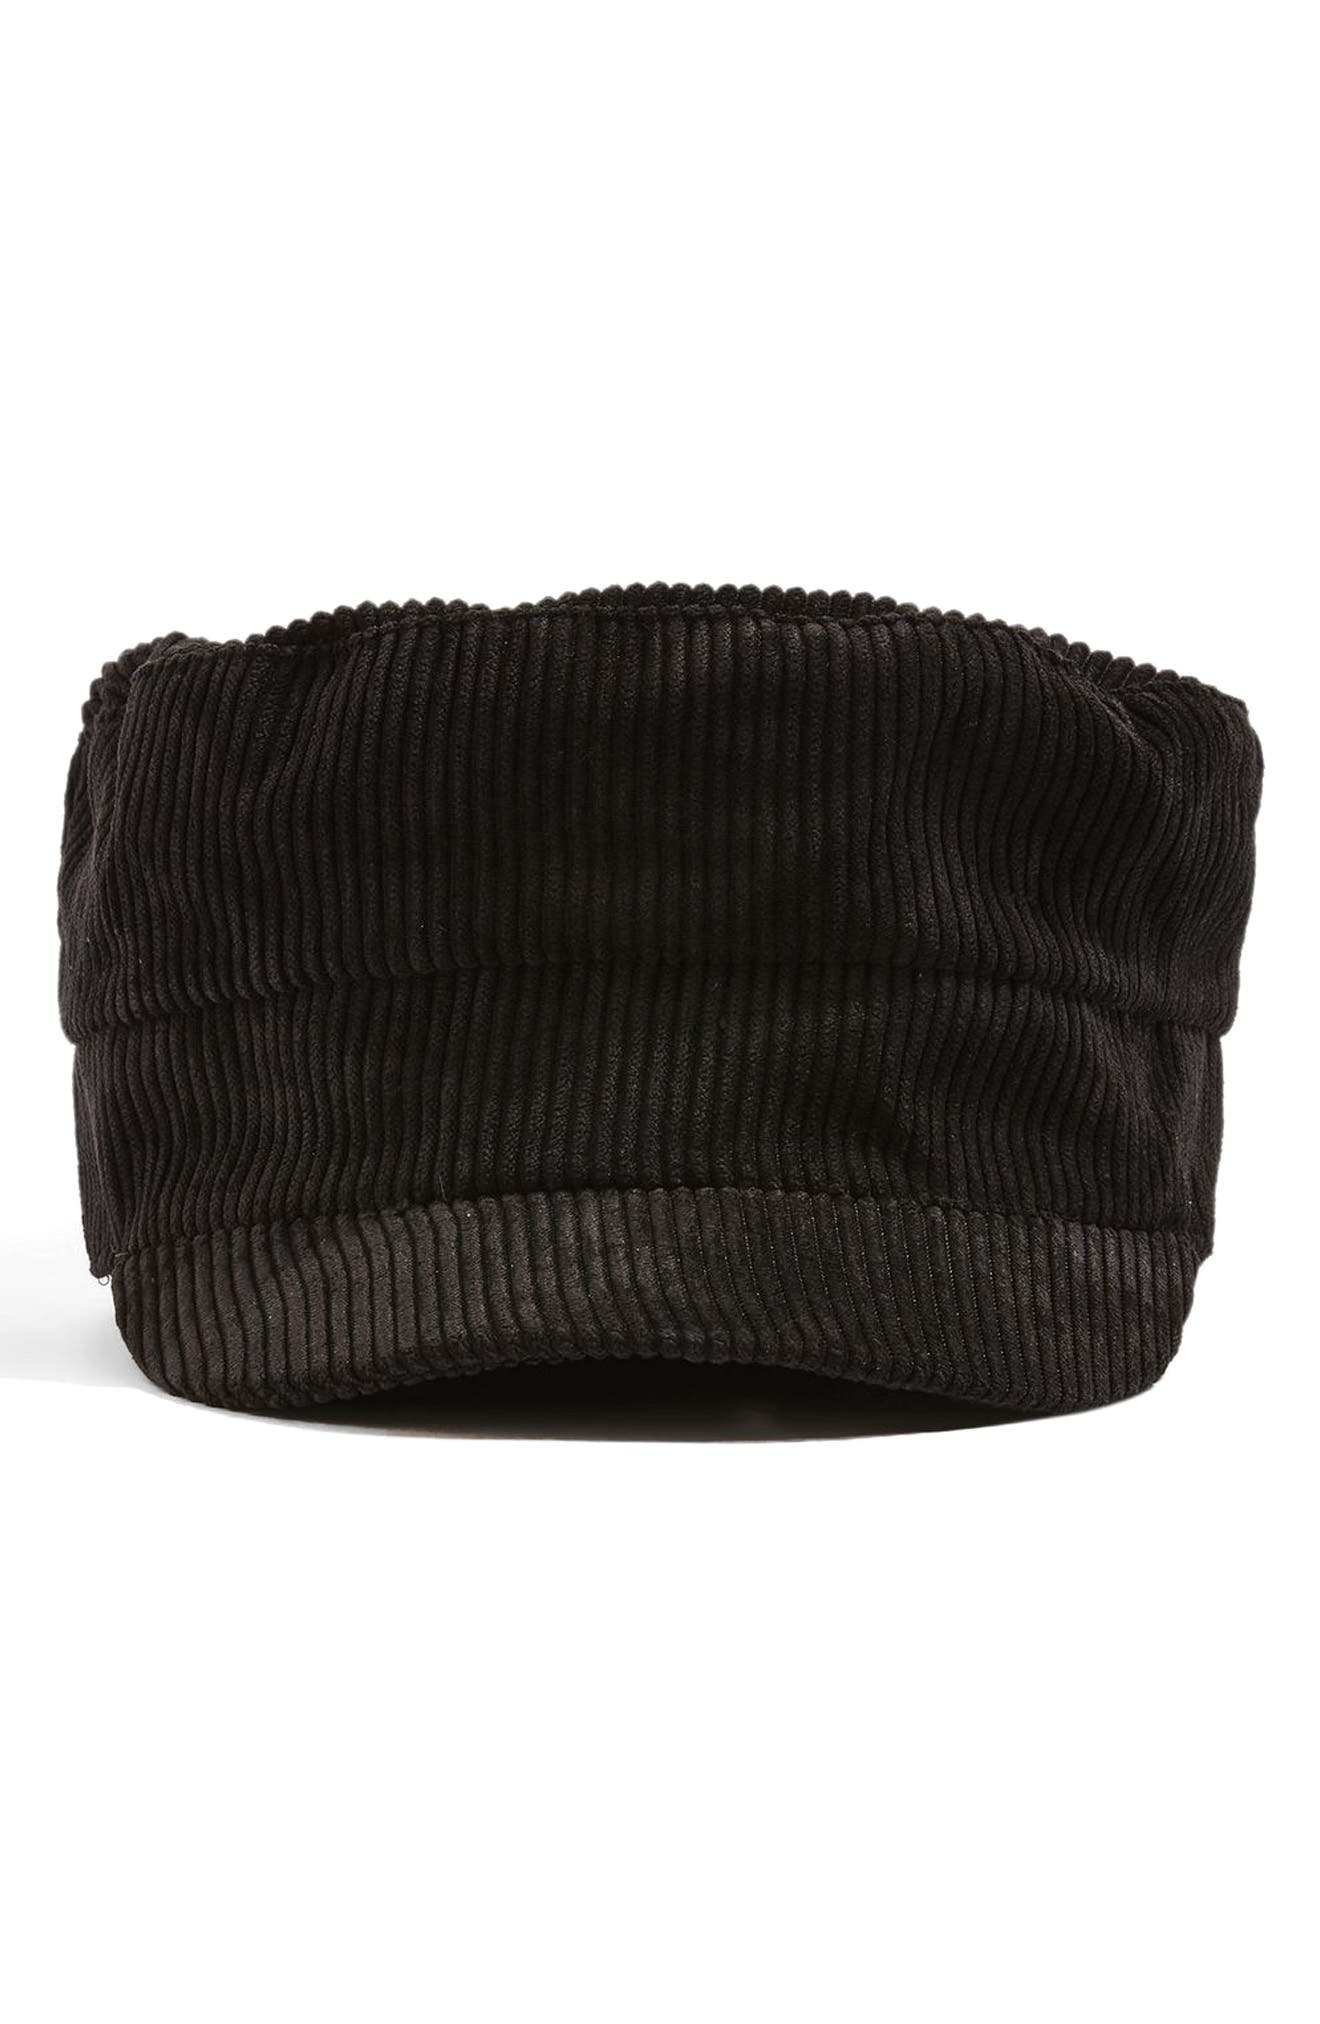 Corduroy Baker Boy Hat,                             Main thumbnail 1, color,                             Black